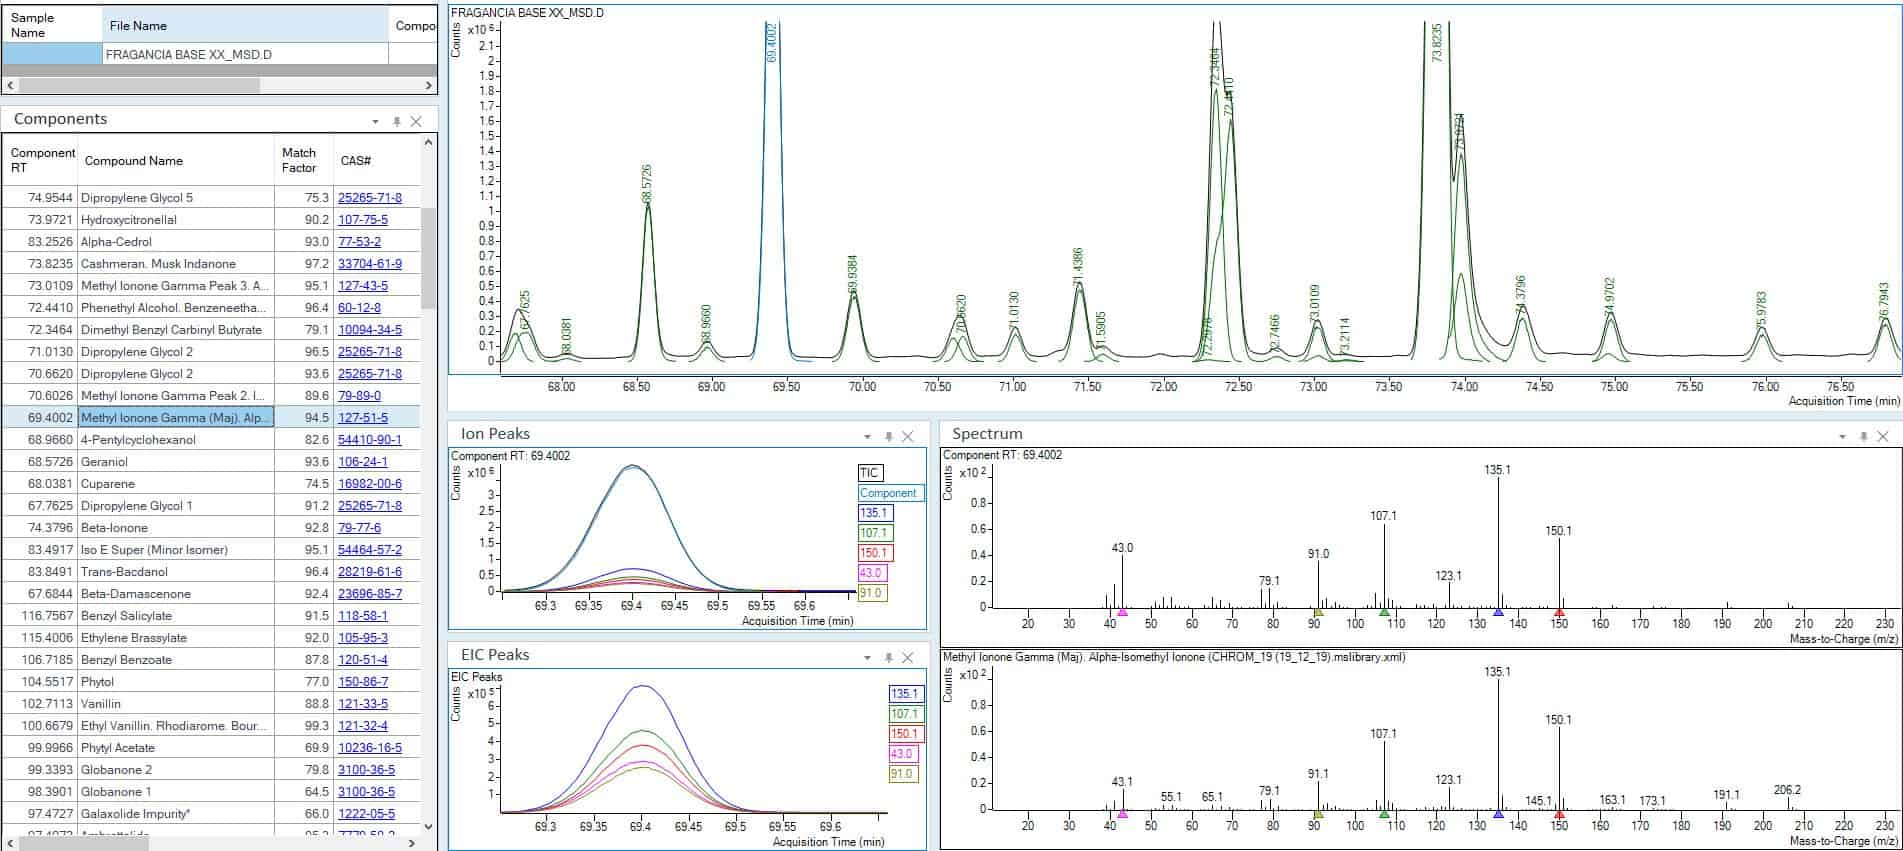 Use of deconvolution algorythm to identify compounds in fragrances by GC/MS